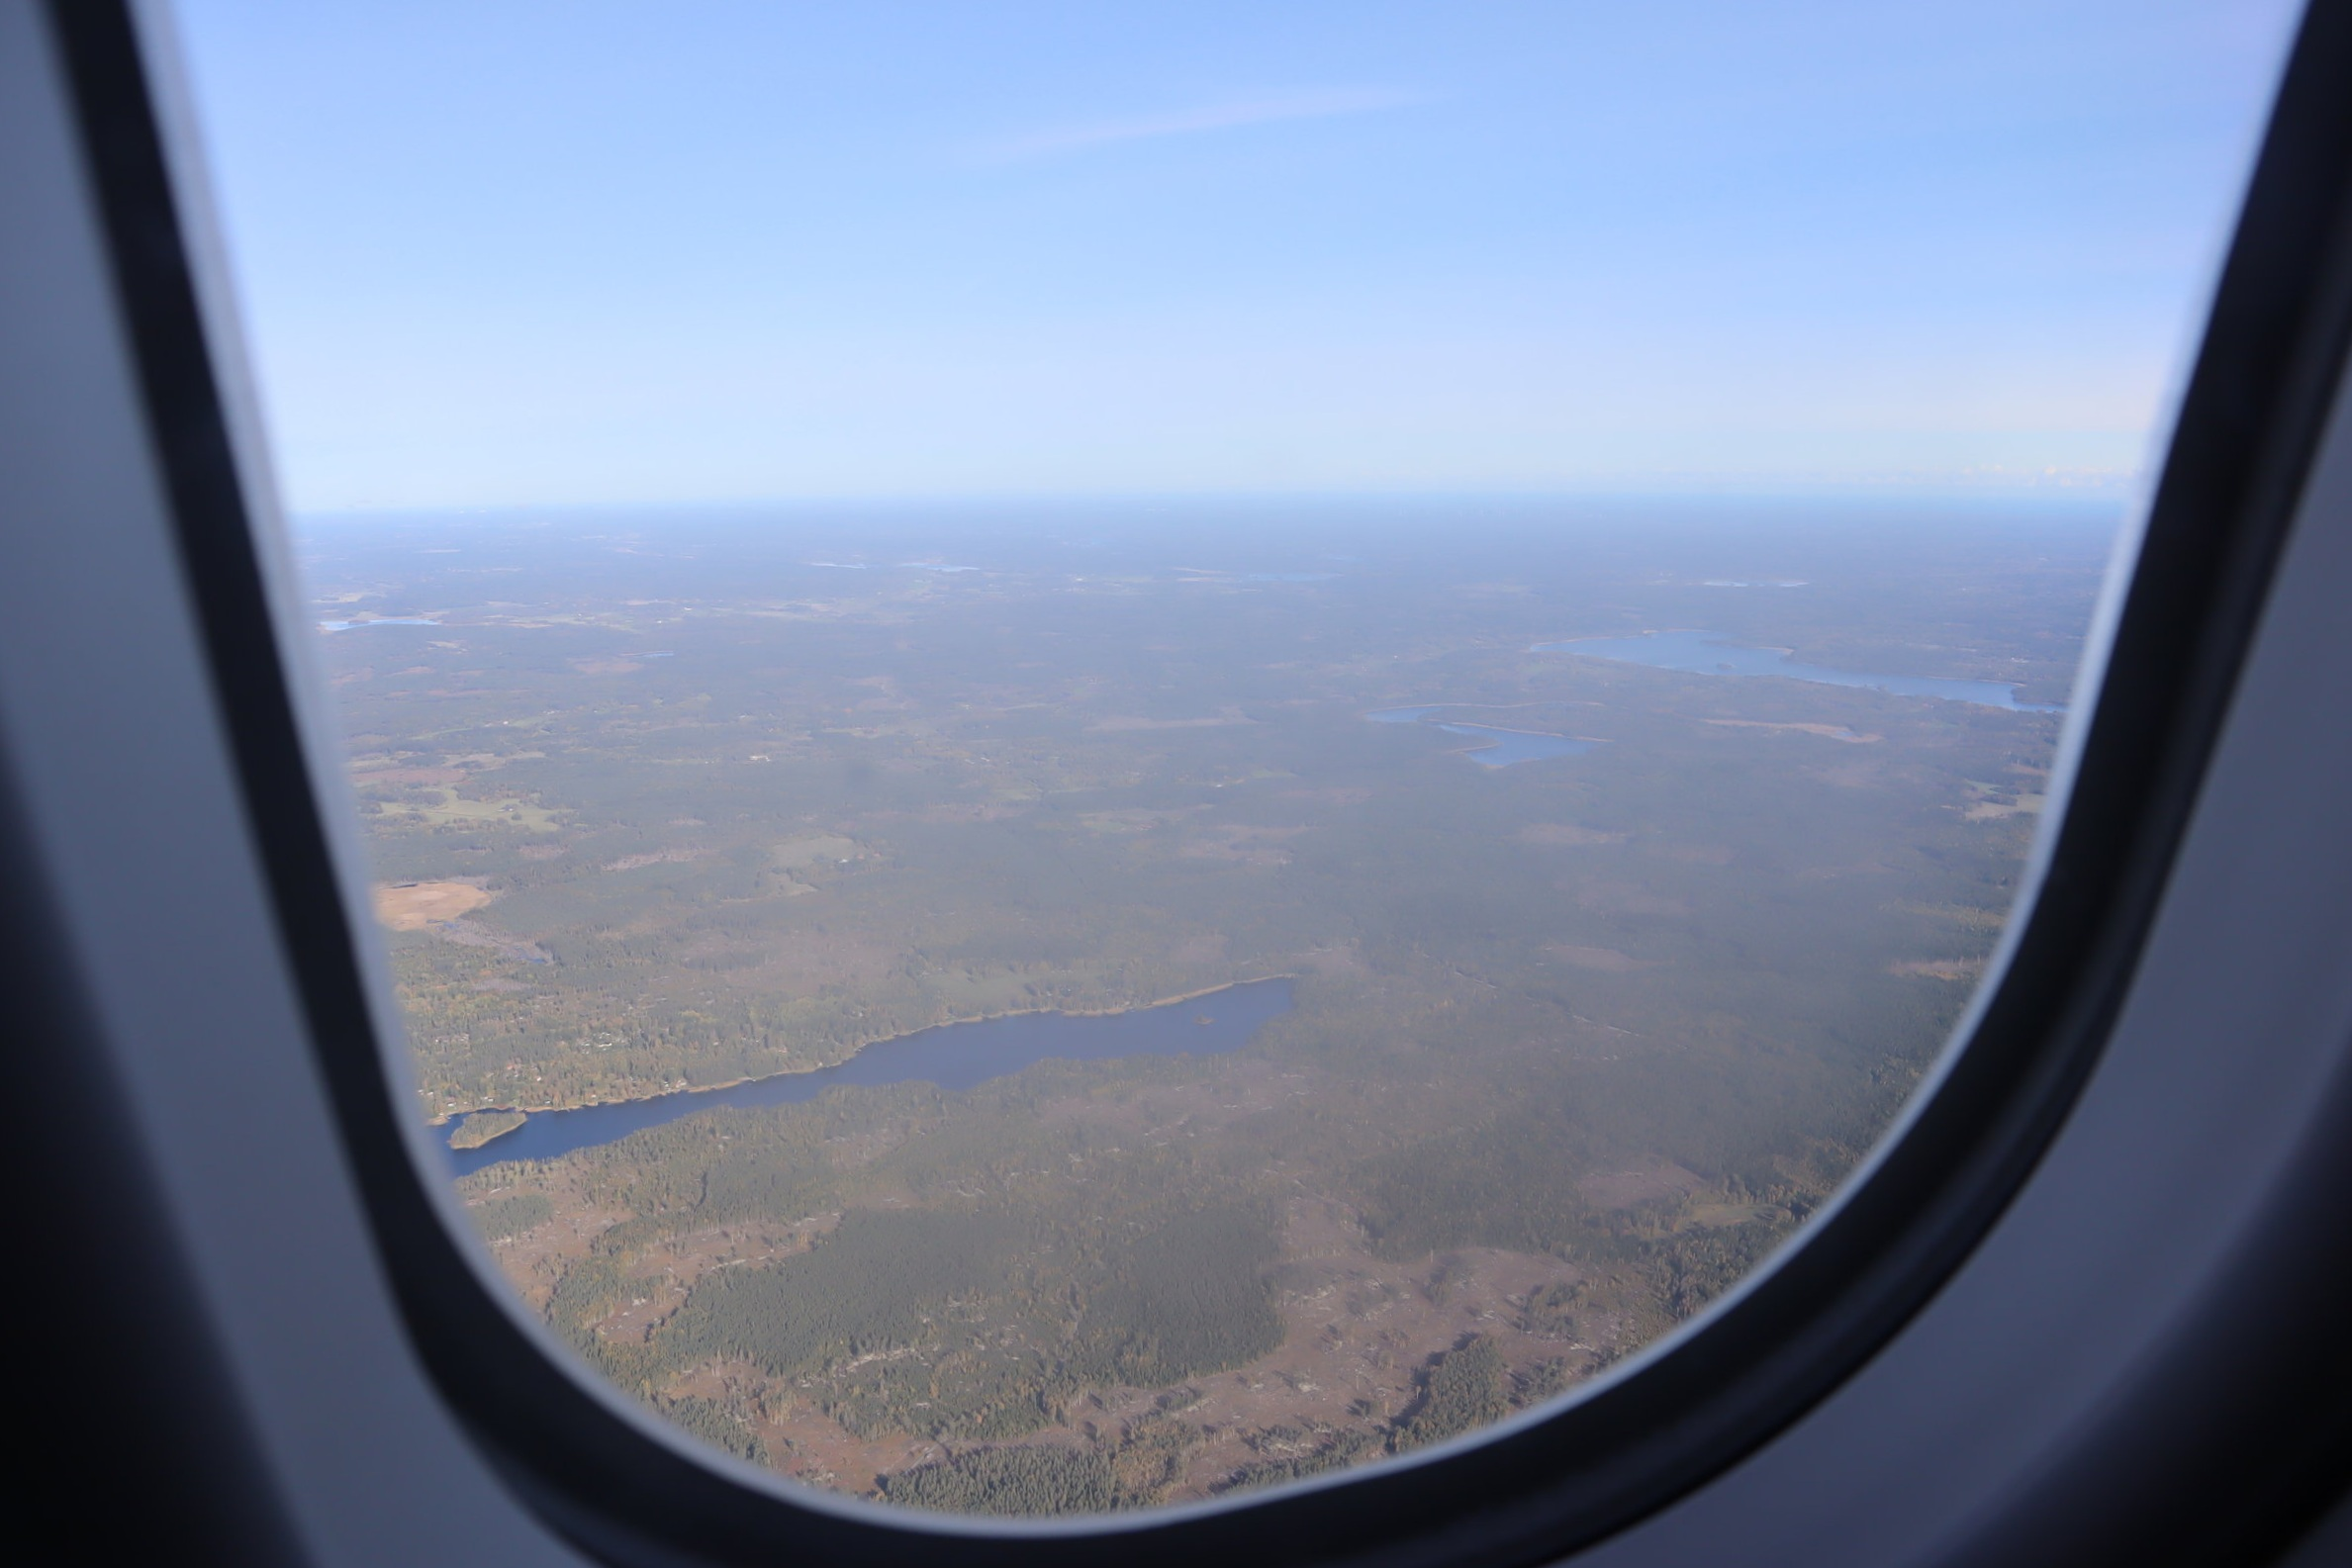 SAS business class – Views on approach to Stockholm